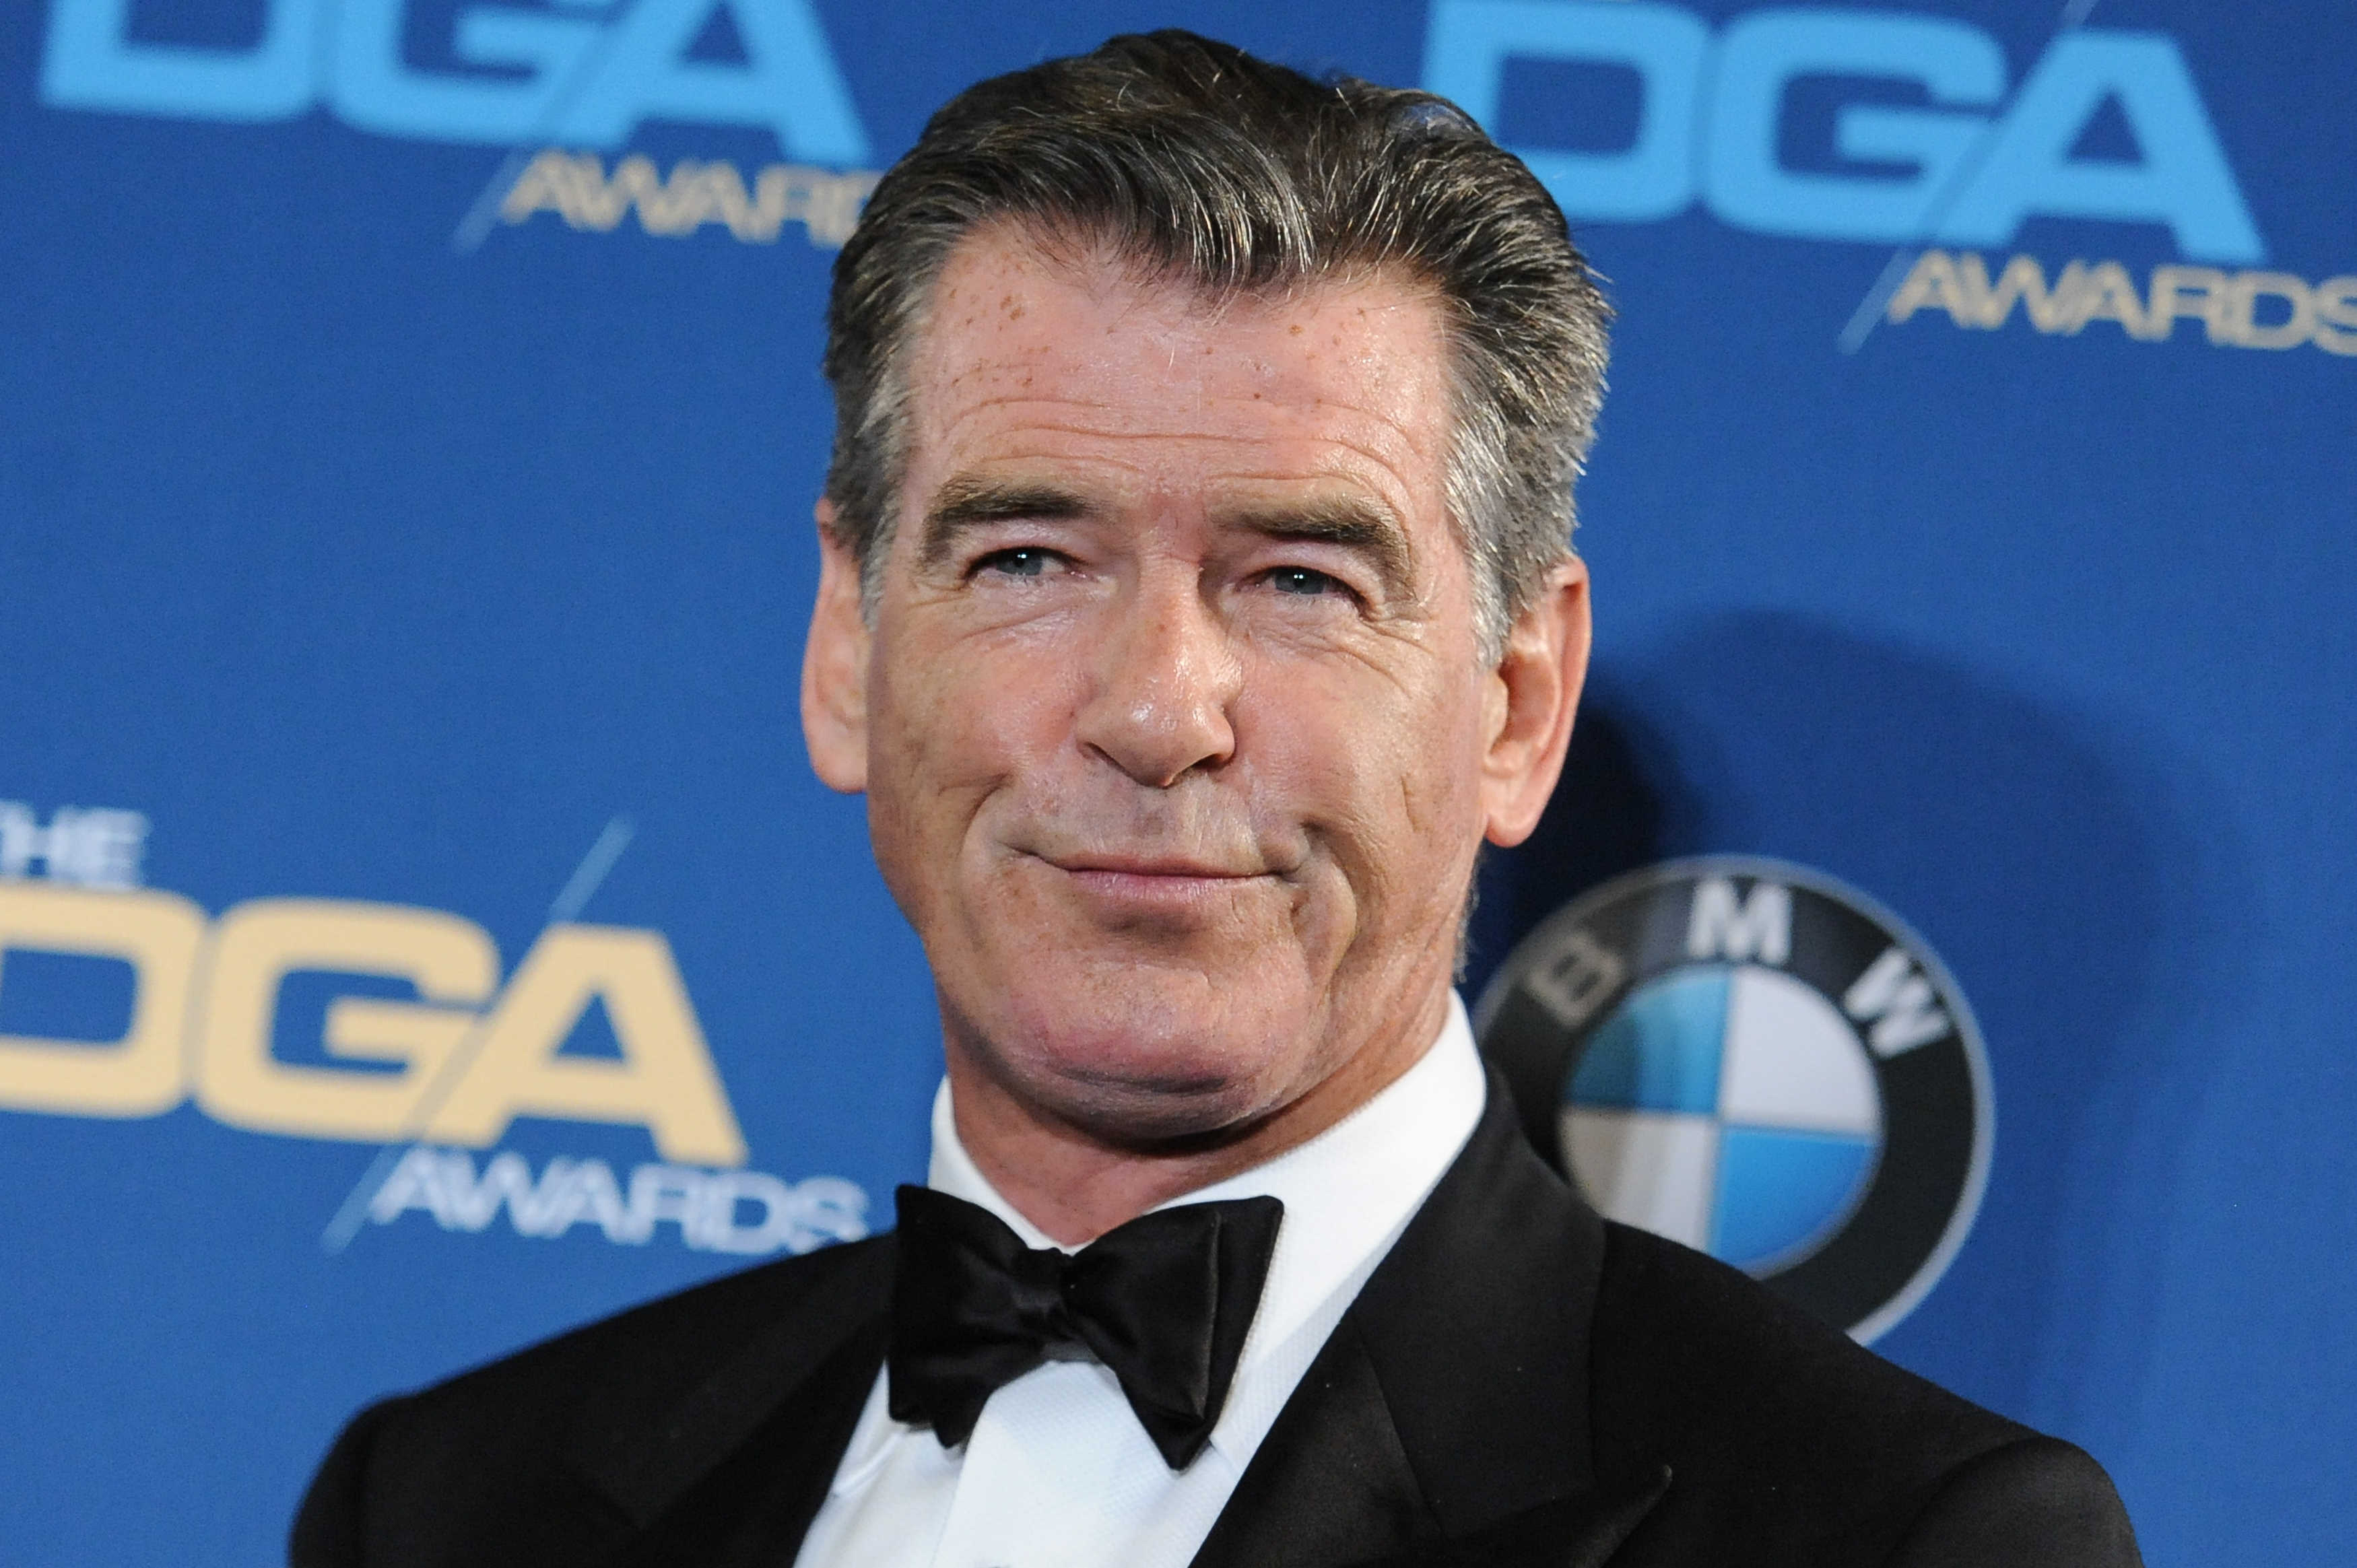 Pierce Brosnan attends the Press Room at the 67th Annual DGA Awards, in Los Angeles, Feb. 7, 2015.